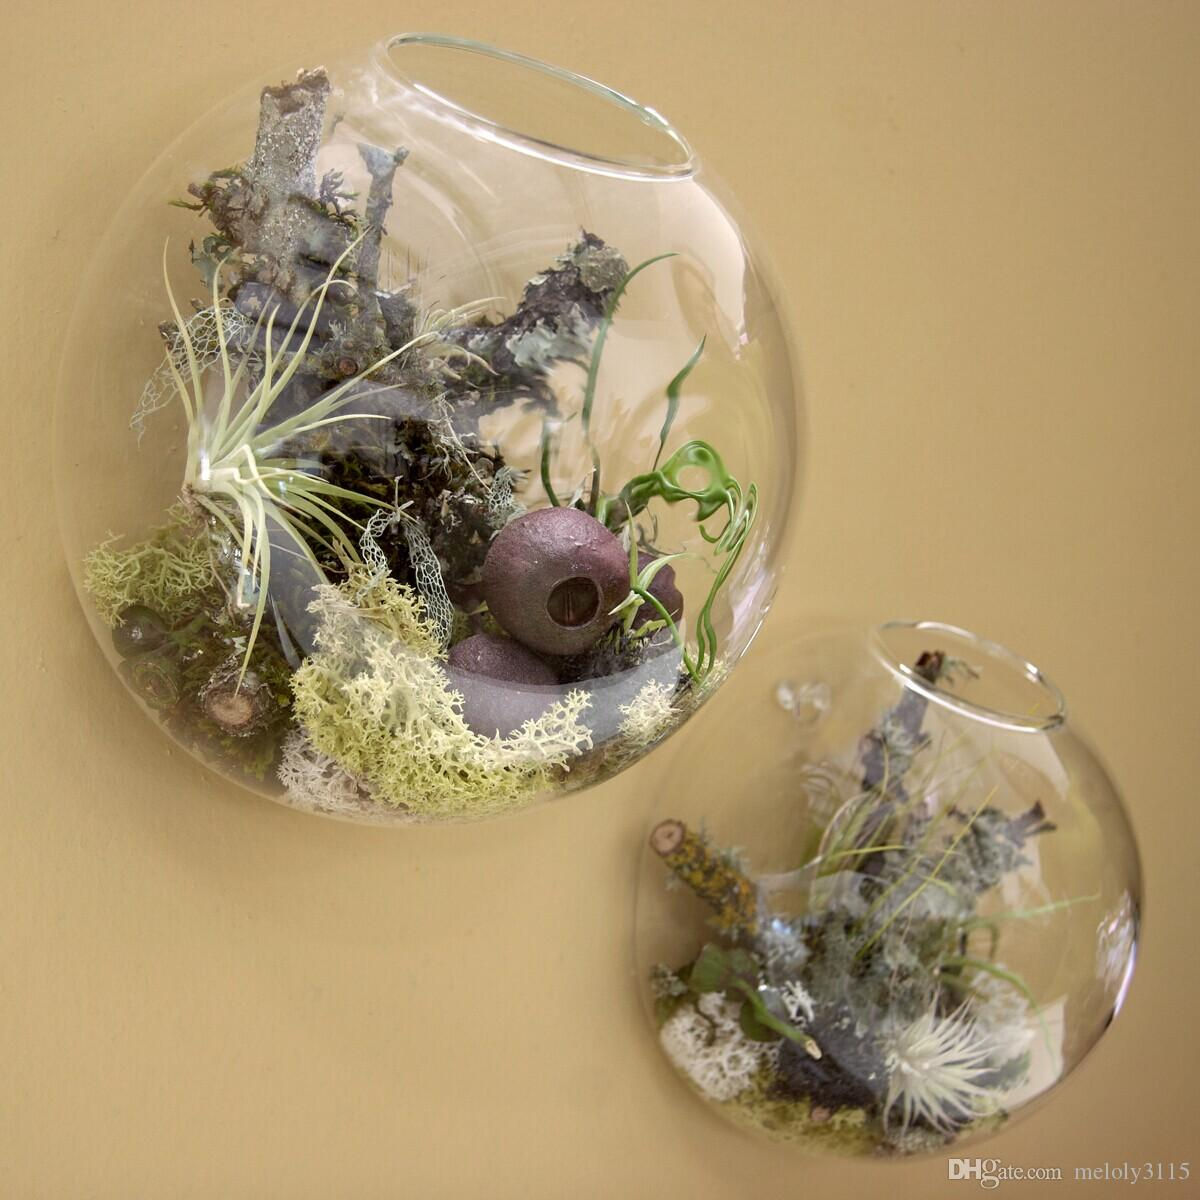 Wall Decor For Home Wall Bubble Terrariumwall Glass Vasefloating Wall Planters For